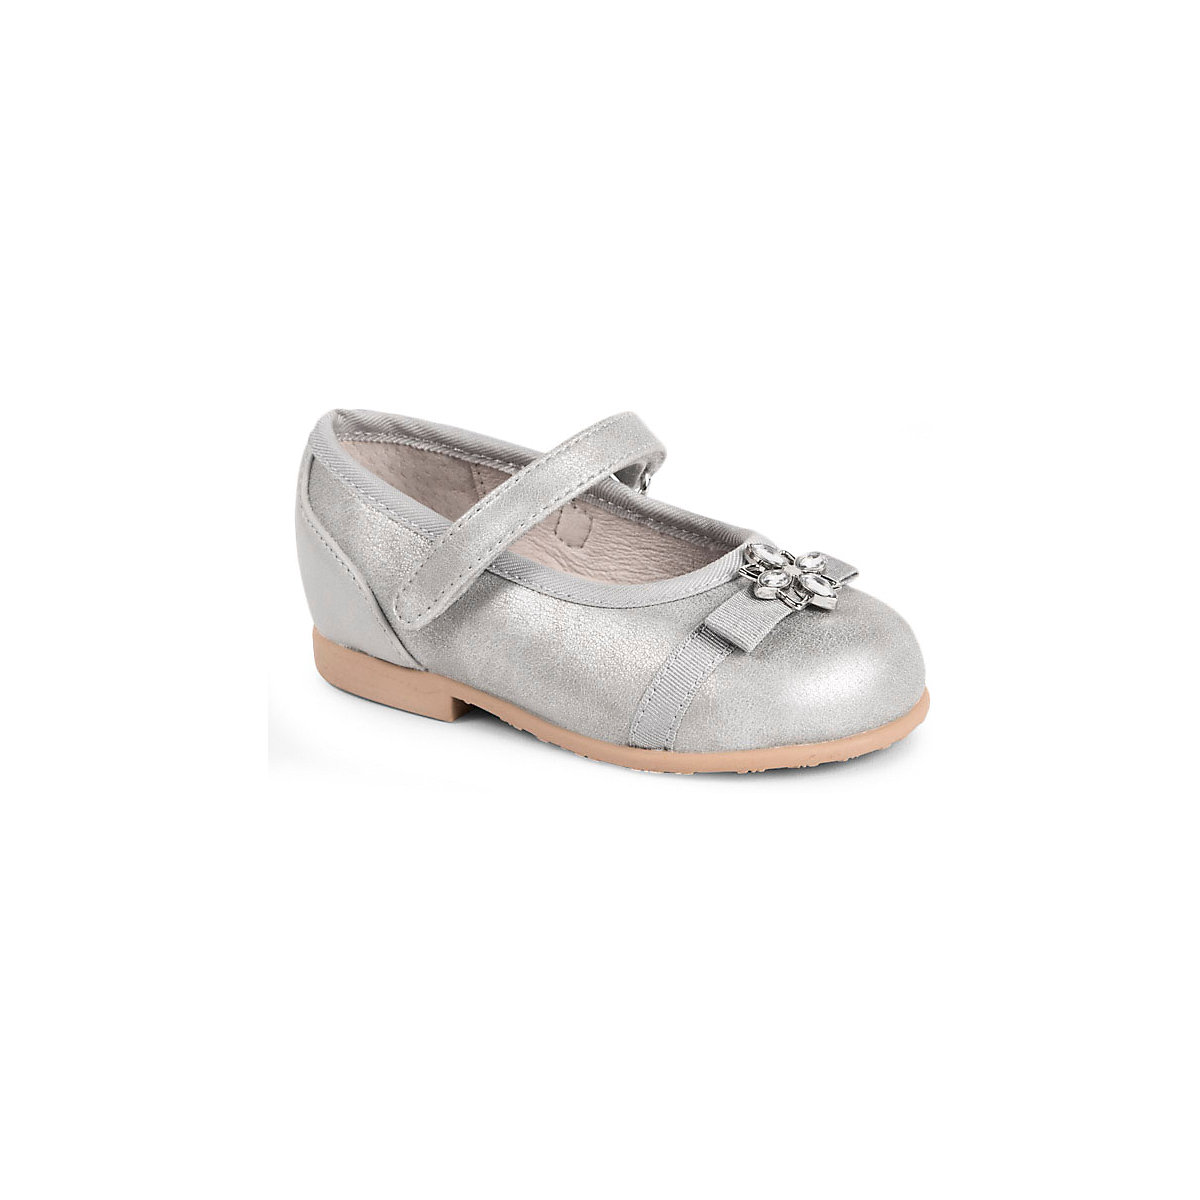 MAYORAL Children's Flats 10642691 silver summer ballet all-season elegant footwear Shoes for girls girl